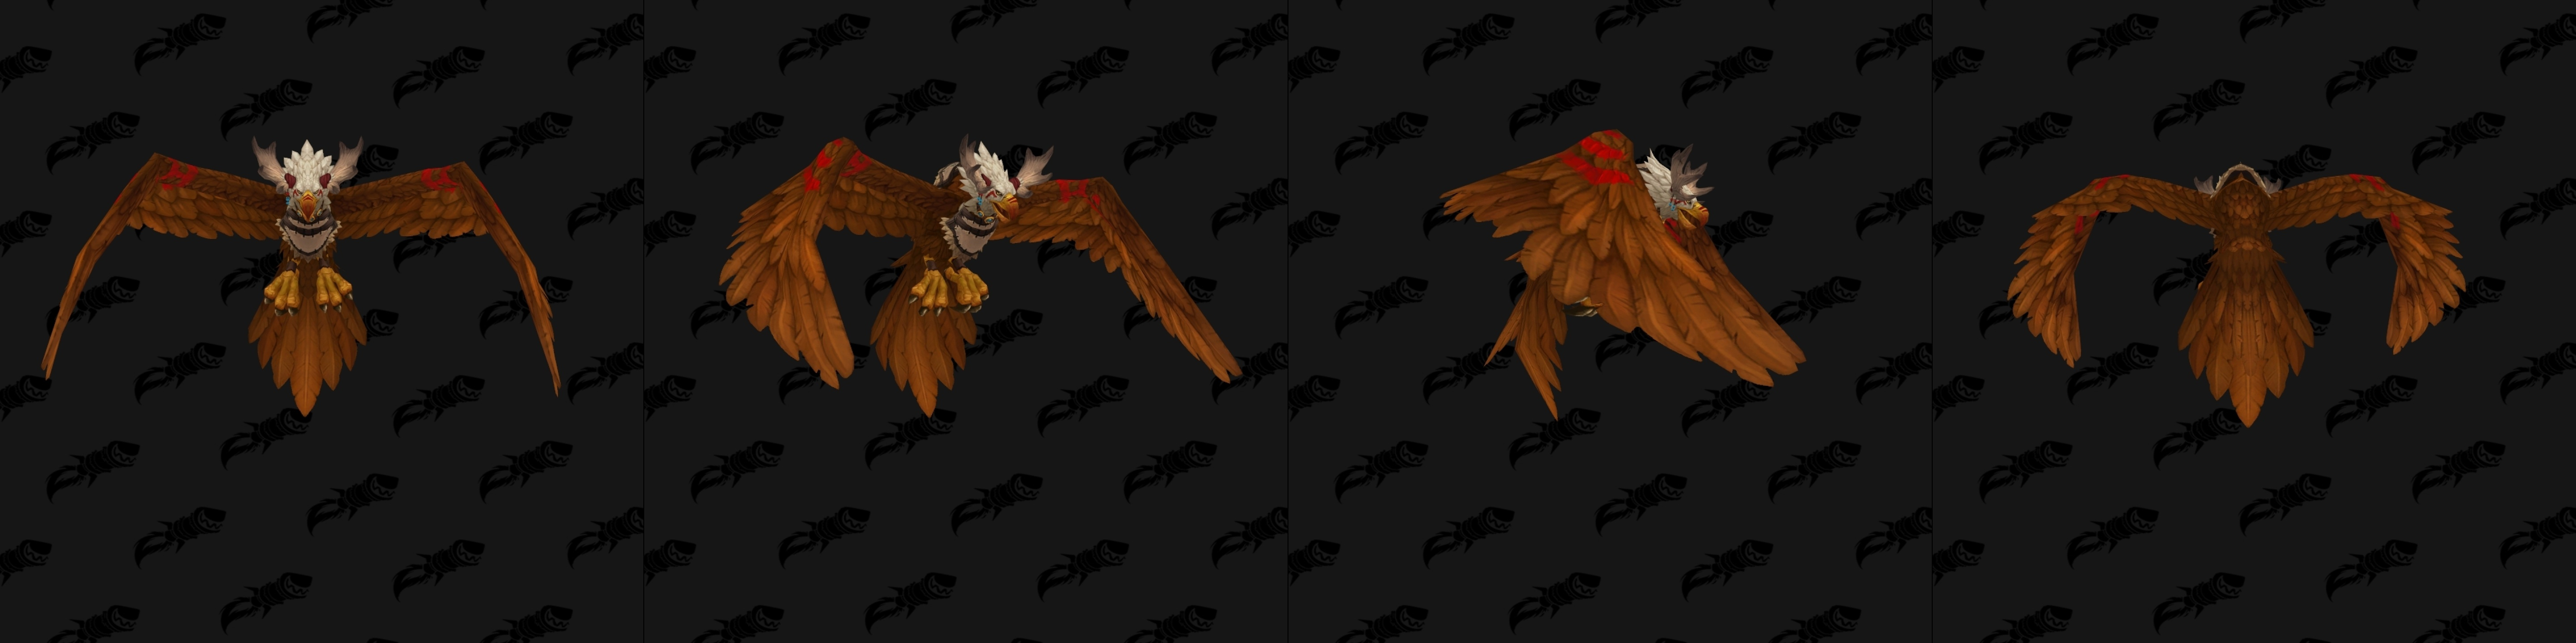 Highmountain tauren allied race druid forms totems and racial bear forms nvjuhfo Choice Image